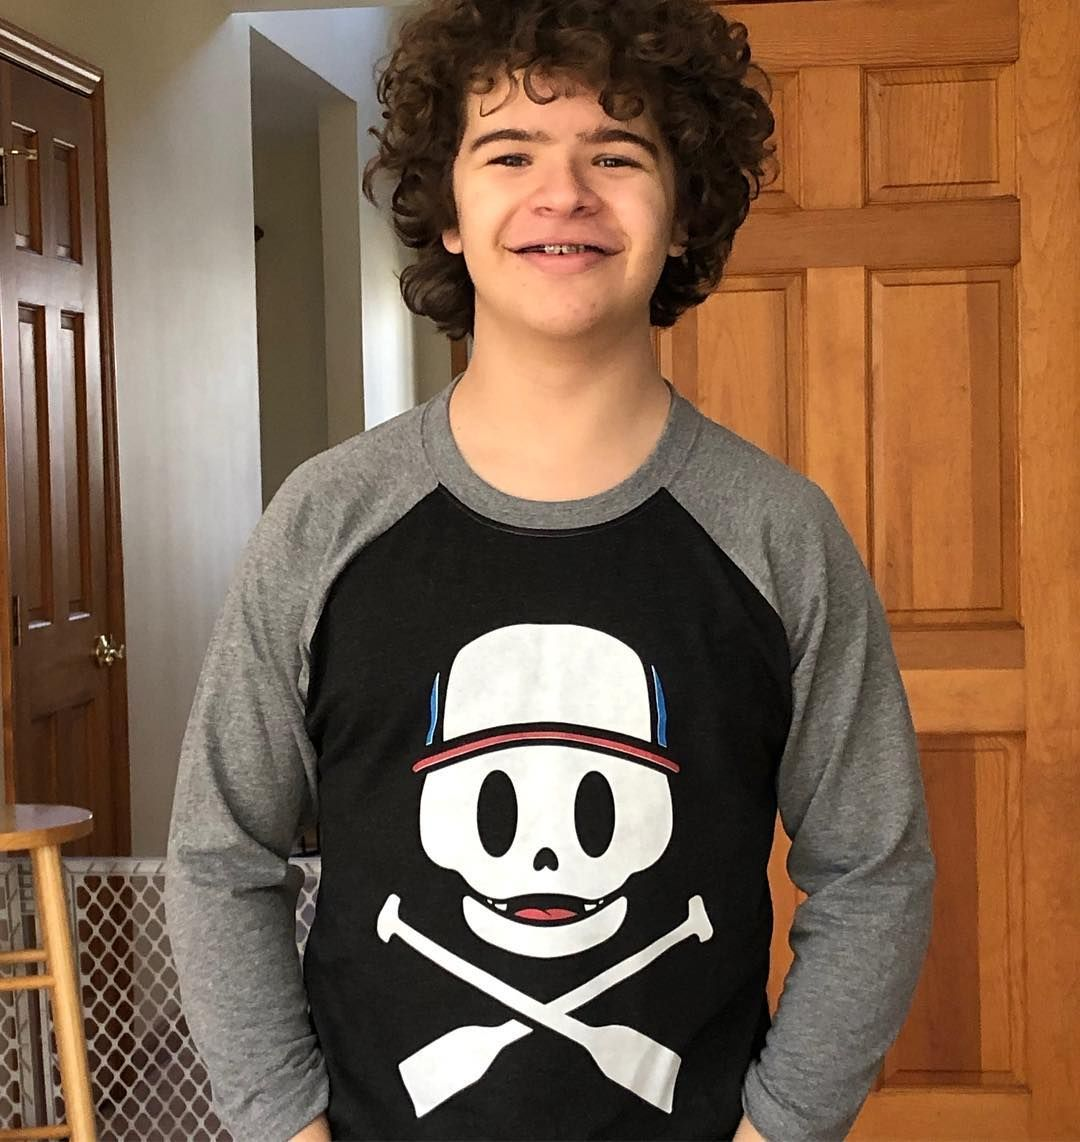 Image may contain:  Stranger Things cast ages, Stranger Things, 3, cast, age, old, birthday, Gaten Matarazzo, Dustin, Hair, Long Sleeve, Face, Sweatshirt, Hoodie, Sweater, Wood, Person, Human, Sleeve, Apparel, Clothing